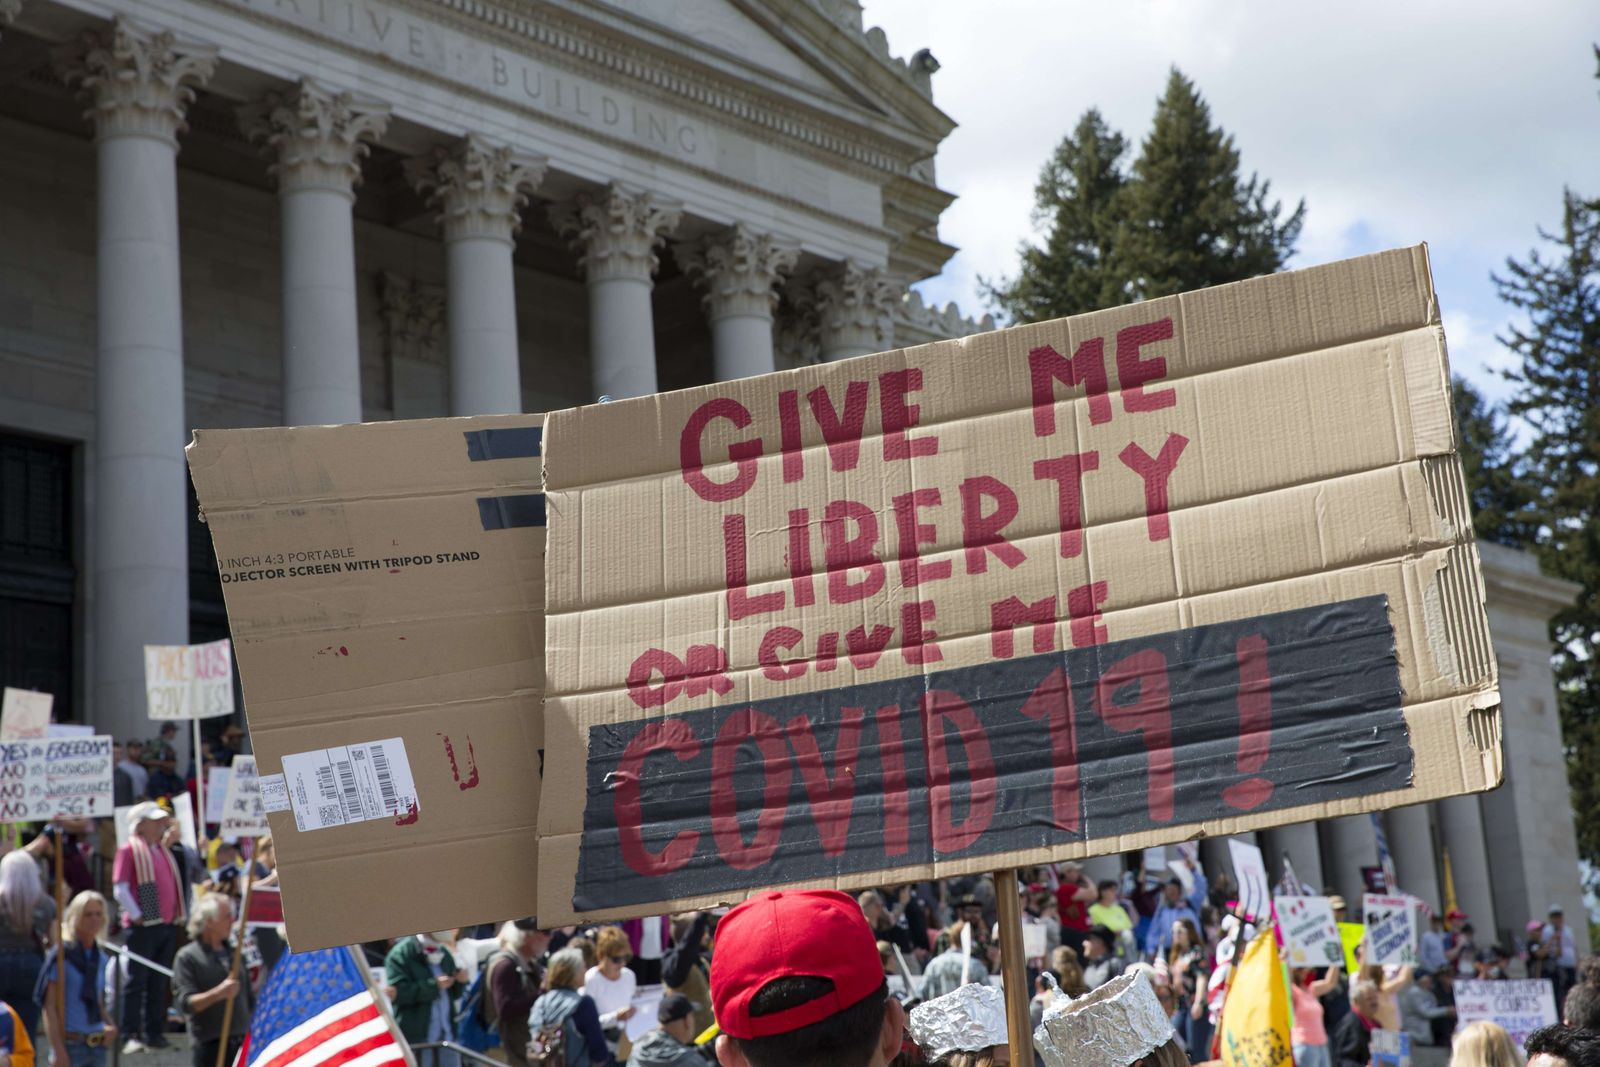 Protestors Rally Against Stay-At-Home Order At Washington State Capitol